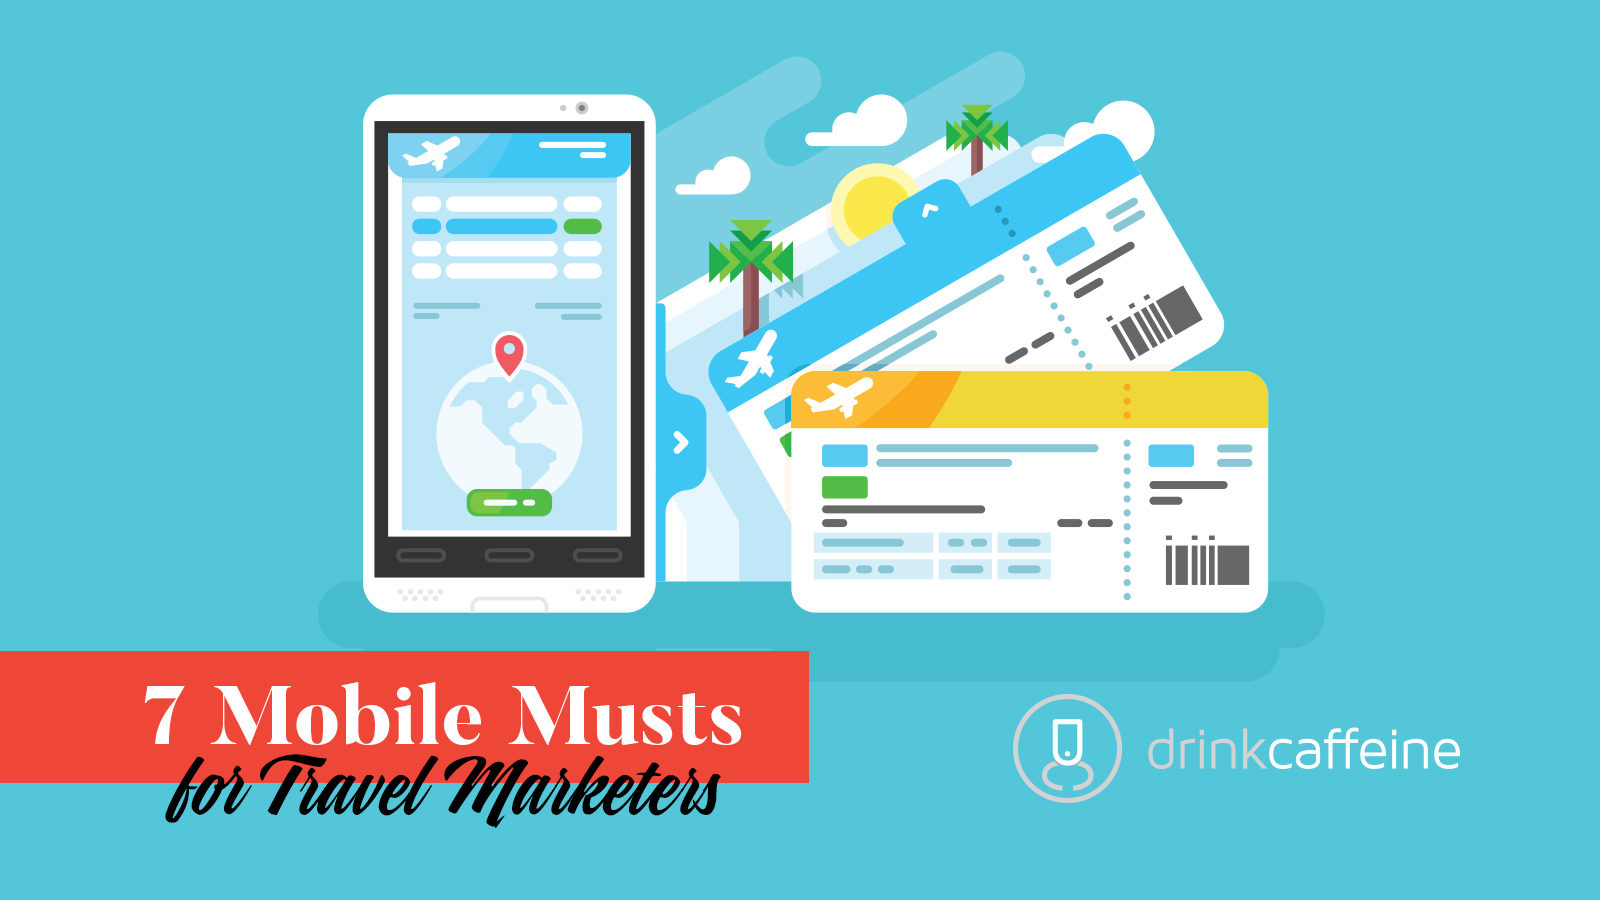 7 Mobile musts for traveler marketers. blog image